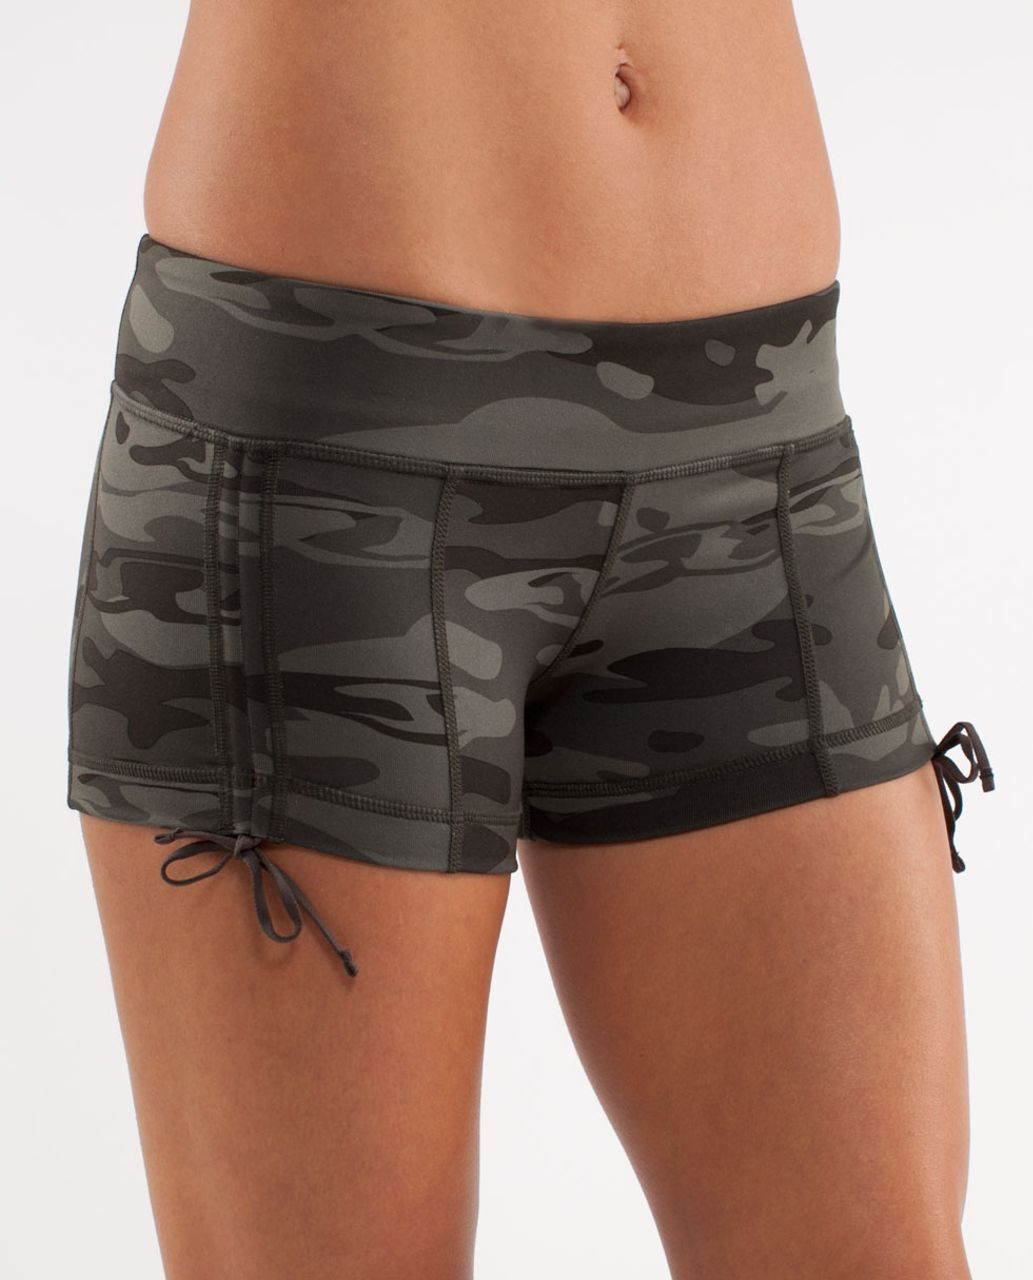 Lululemon Hot Hot Short - Wren /  Retro Camo